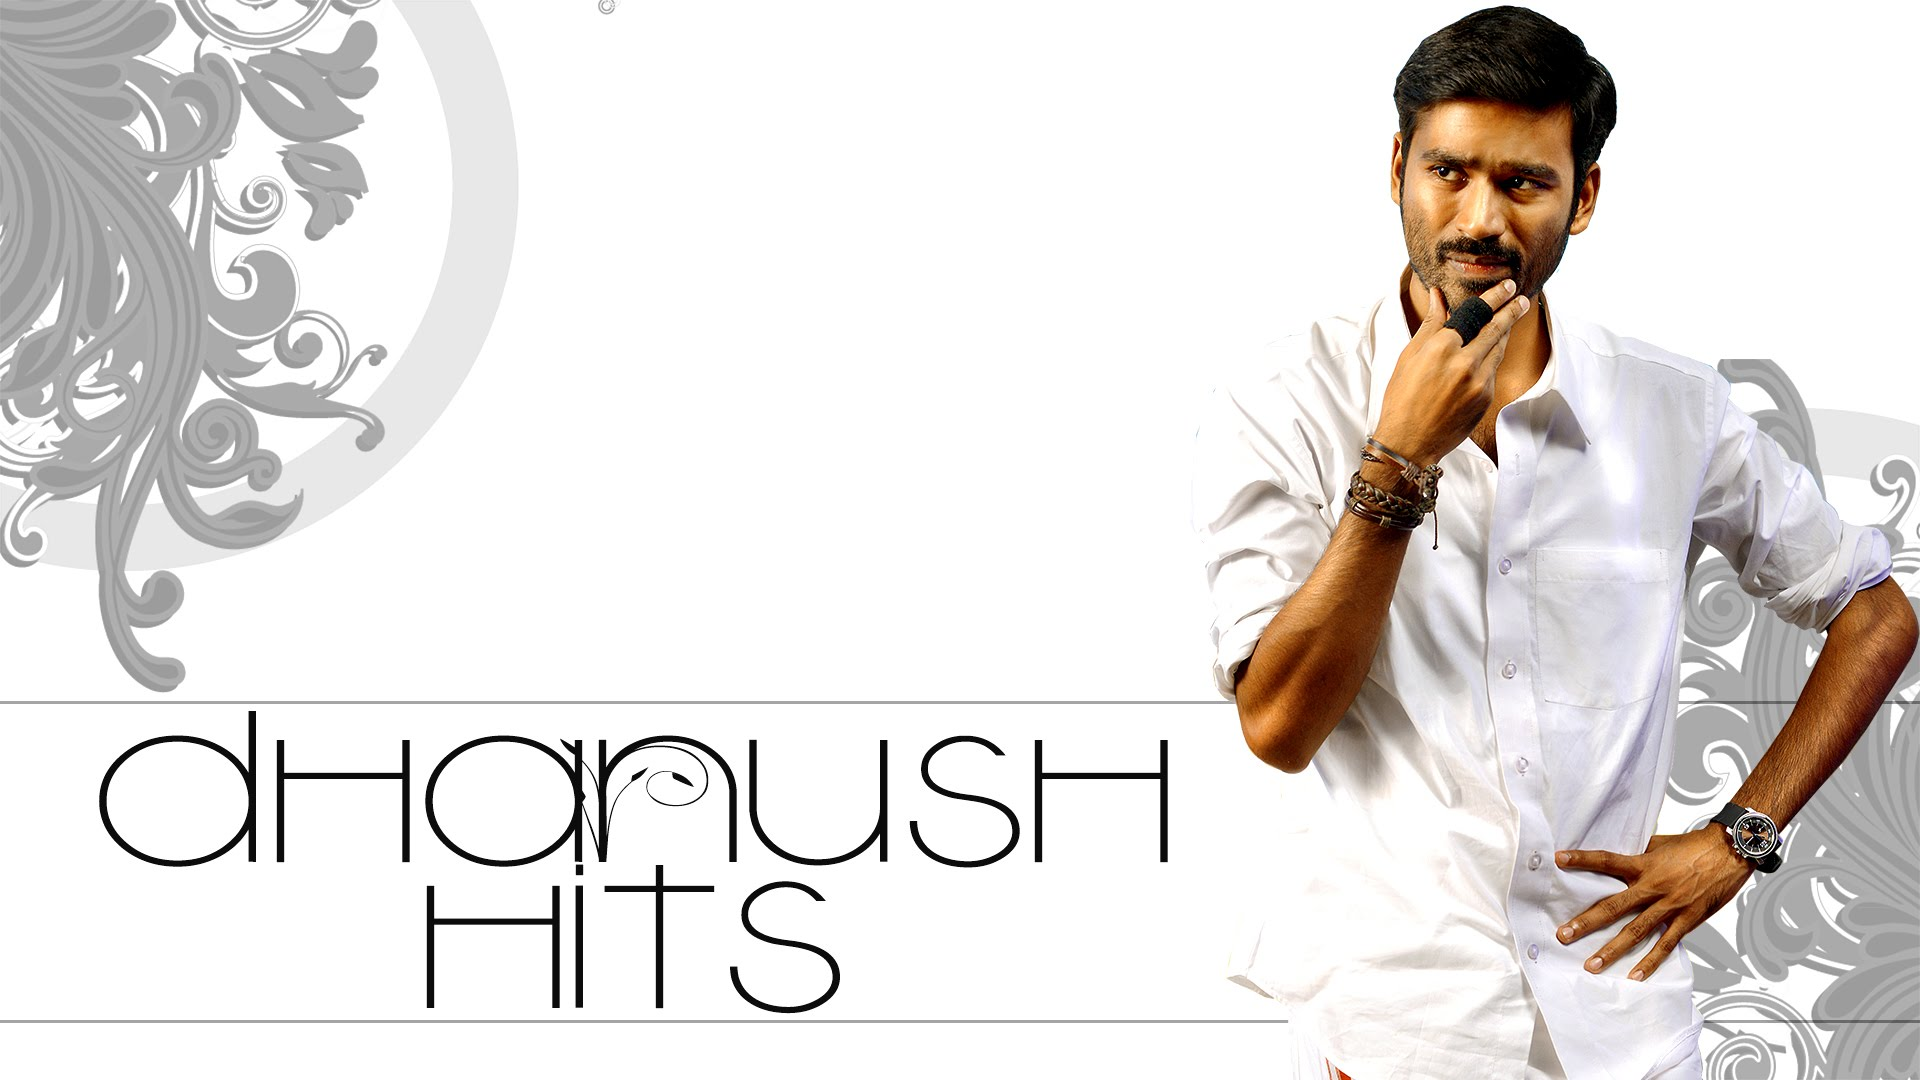 Dhanush hd wallpaper